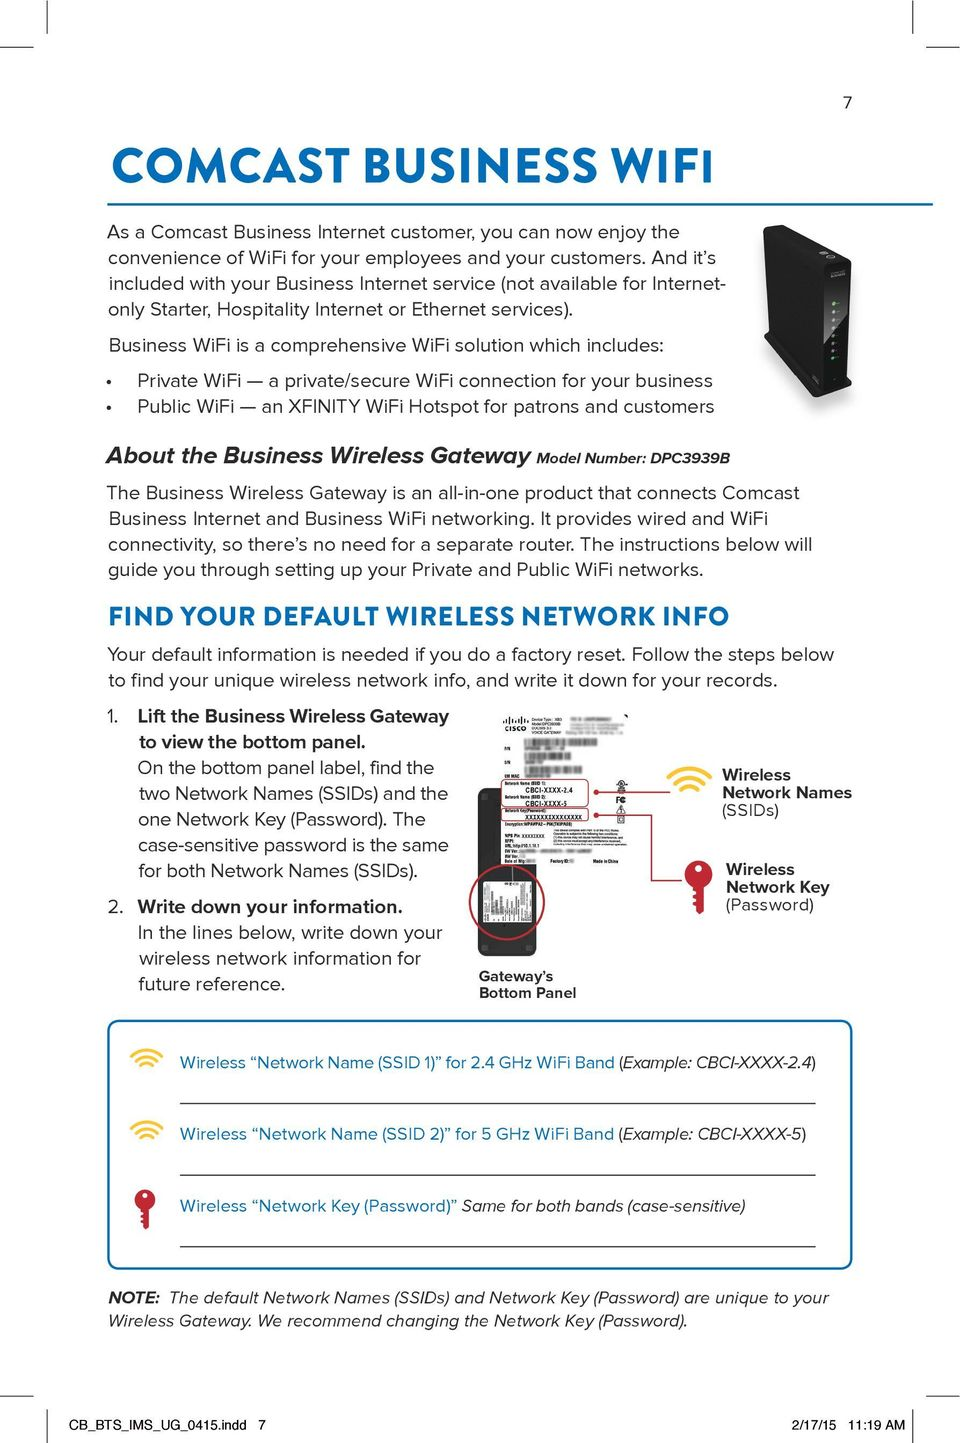 Business WiFi is a comprehensive WiFi solution which includes: Private WiFi a private/secure WiFi connection for your business Public WiFi an XFINITY WiFi Hotspot for patrons and customers About the